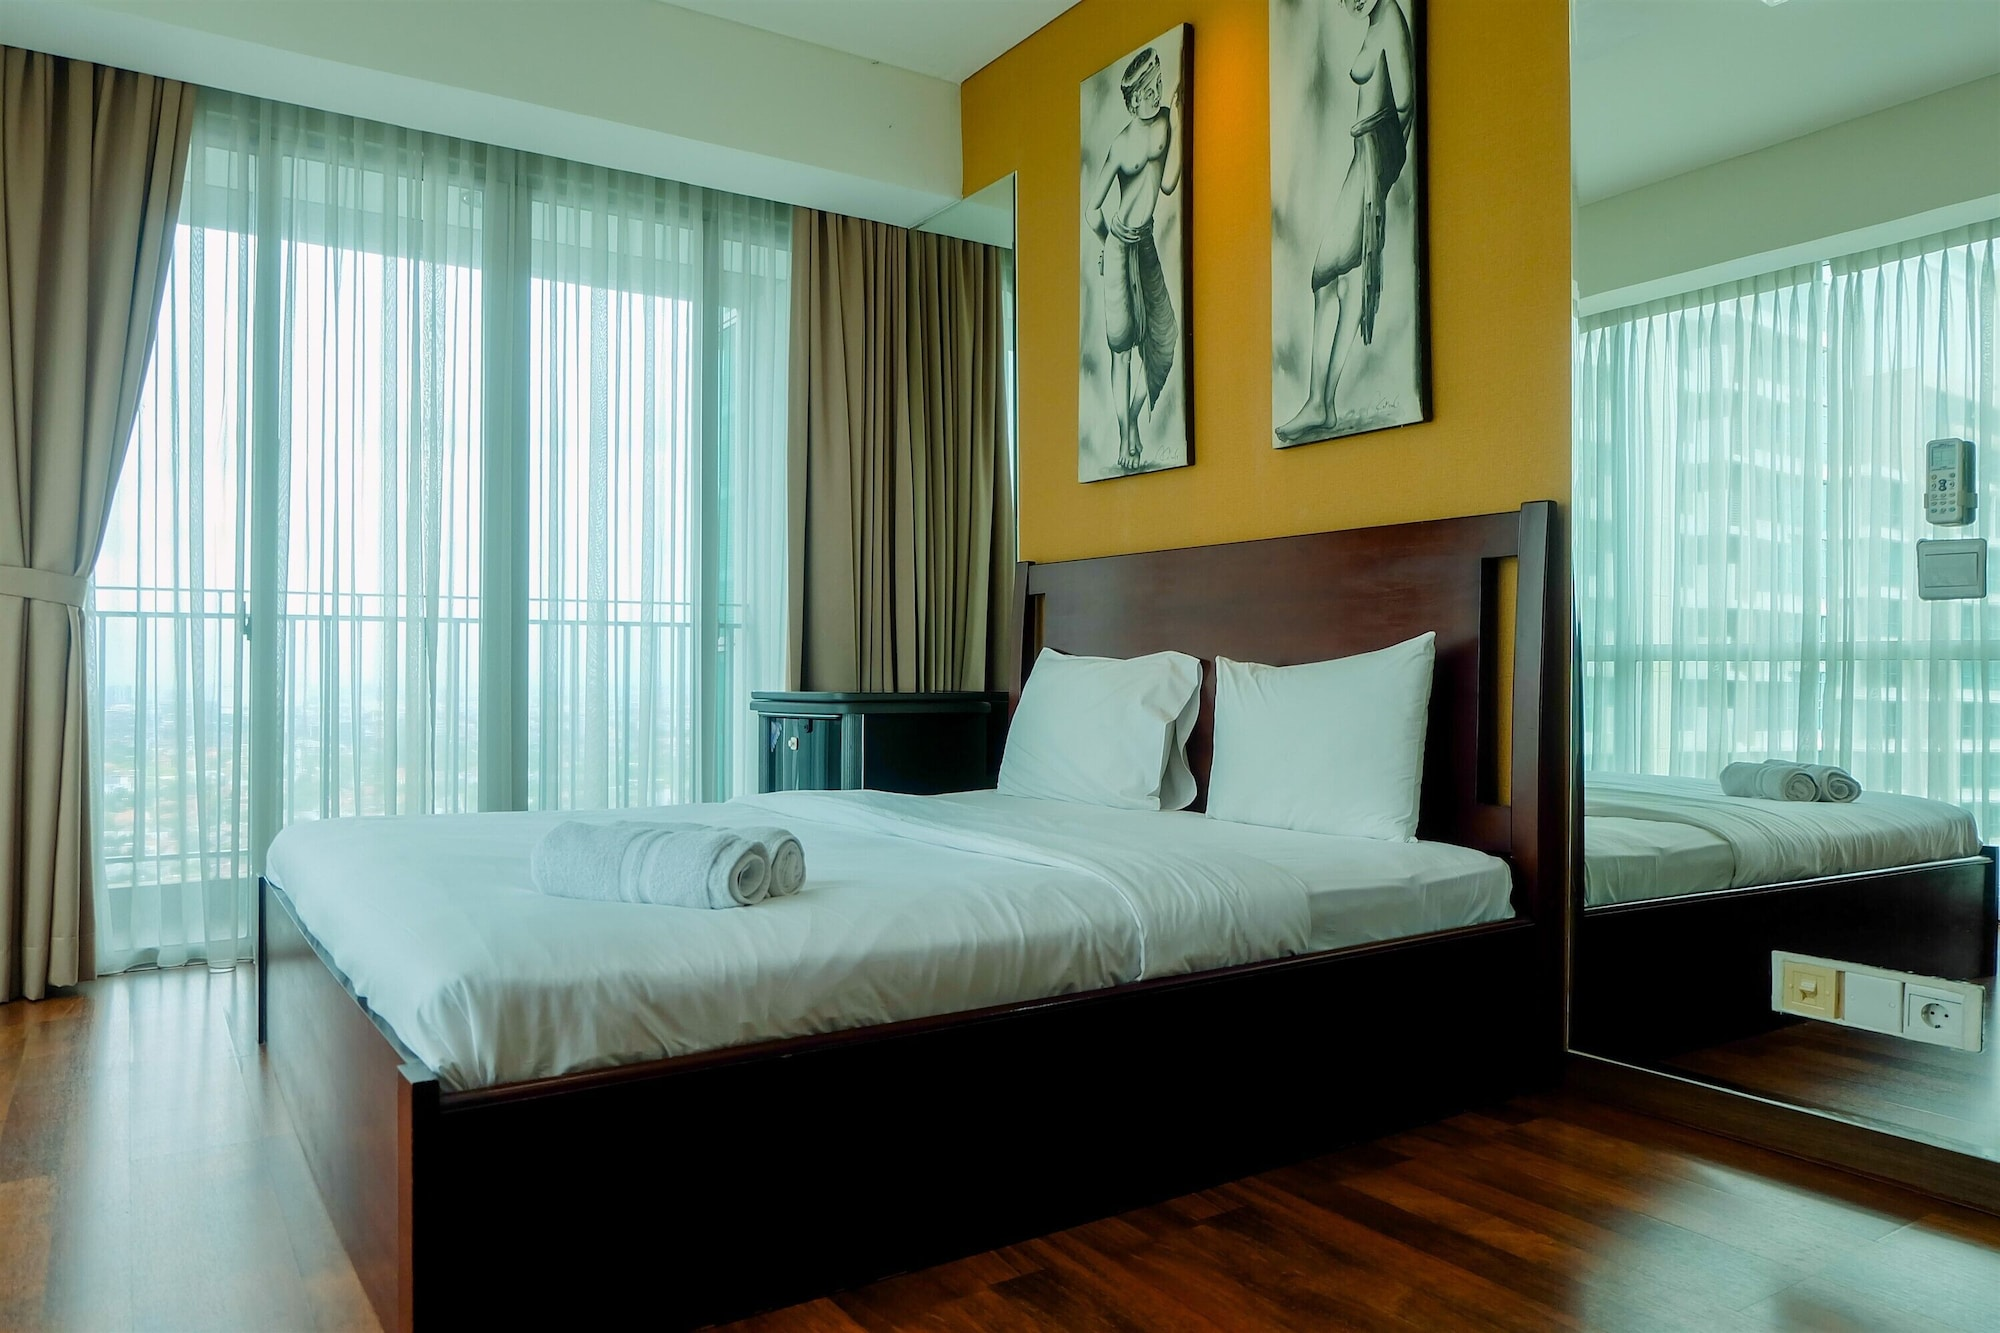 Premium and Spacious 3BR Apartment at Kemang Village, South Jakarta